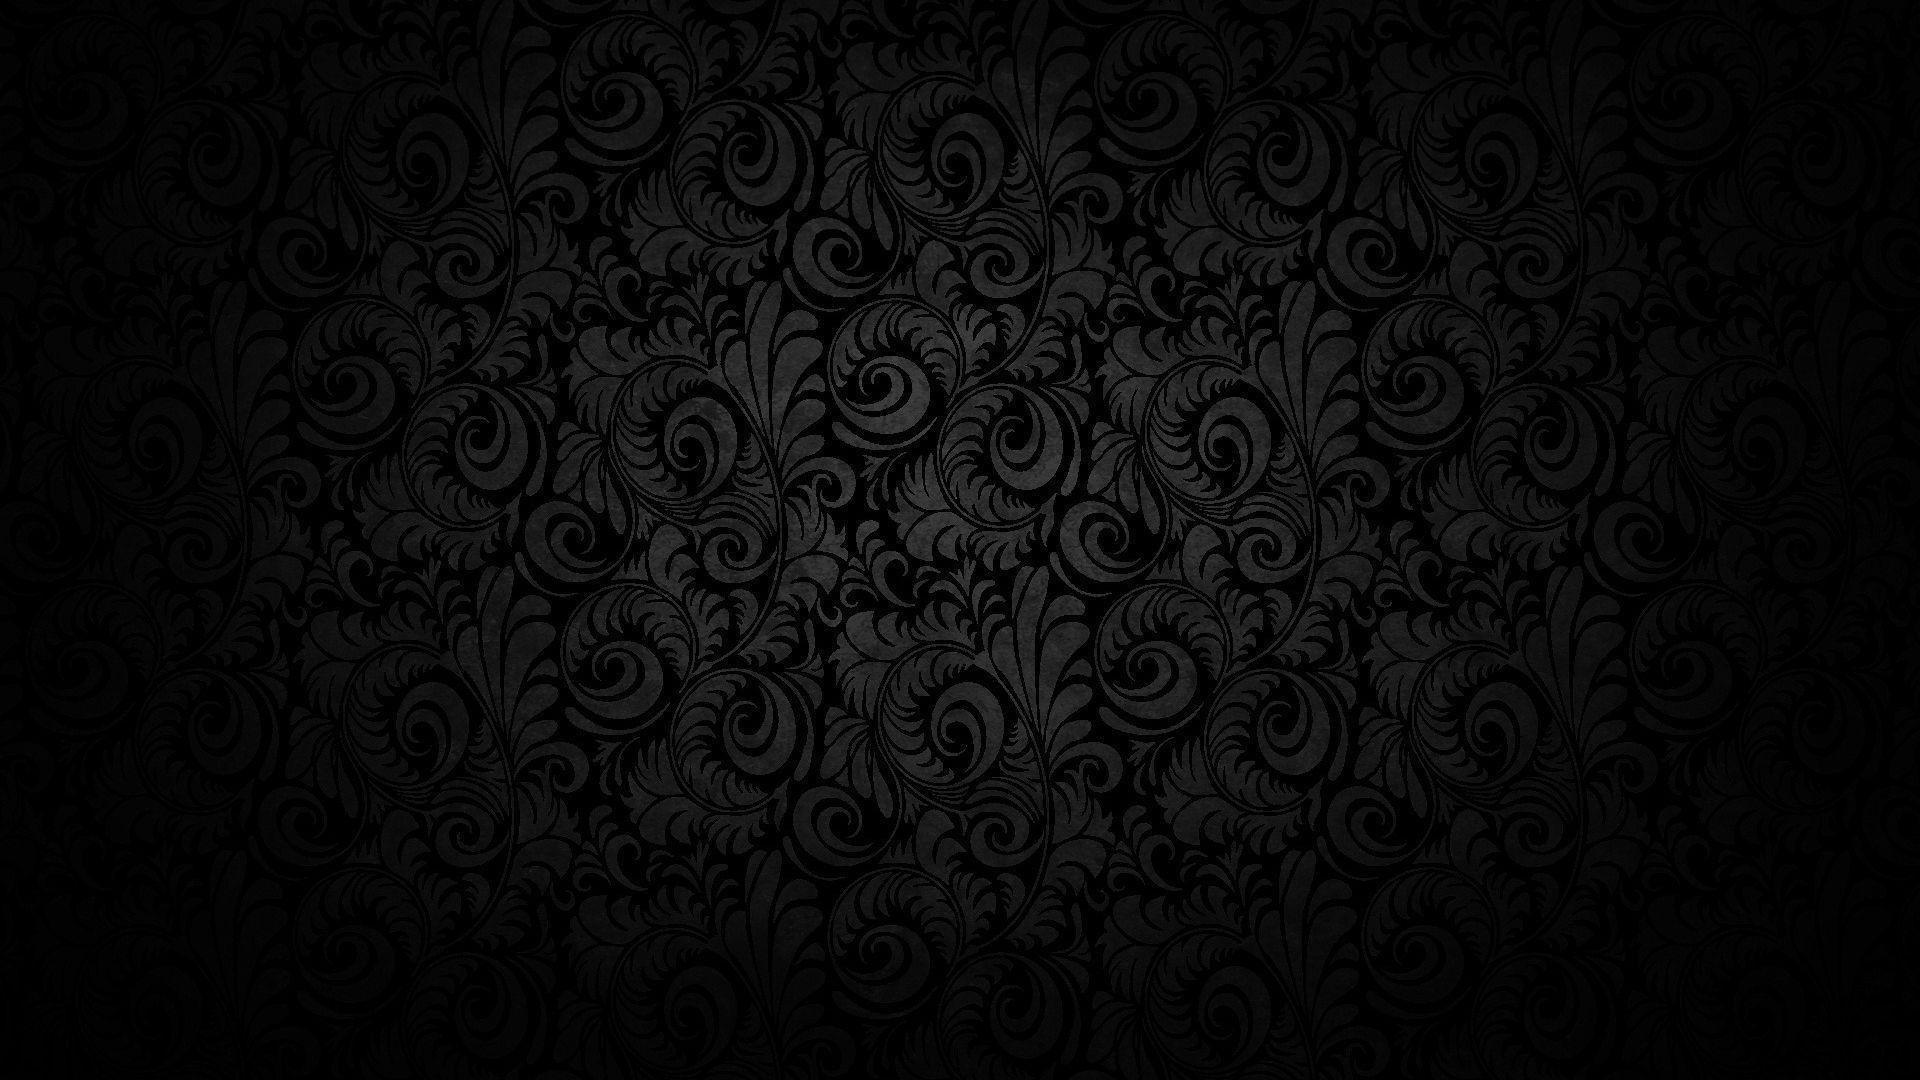 Download Black Abstract Backgrounds Hd Backgrounds Wallpapers 20 HD